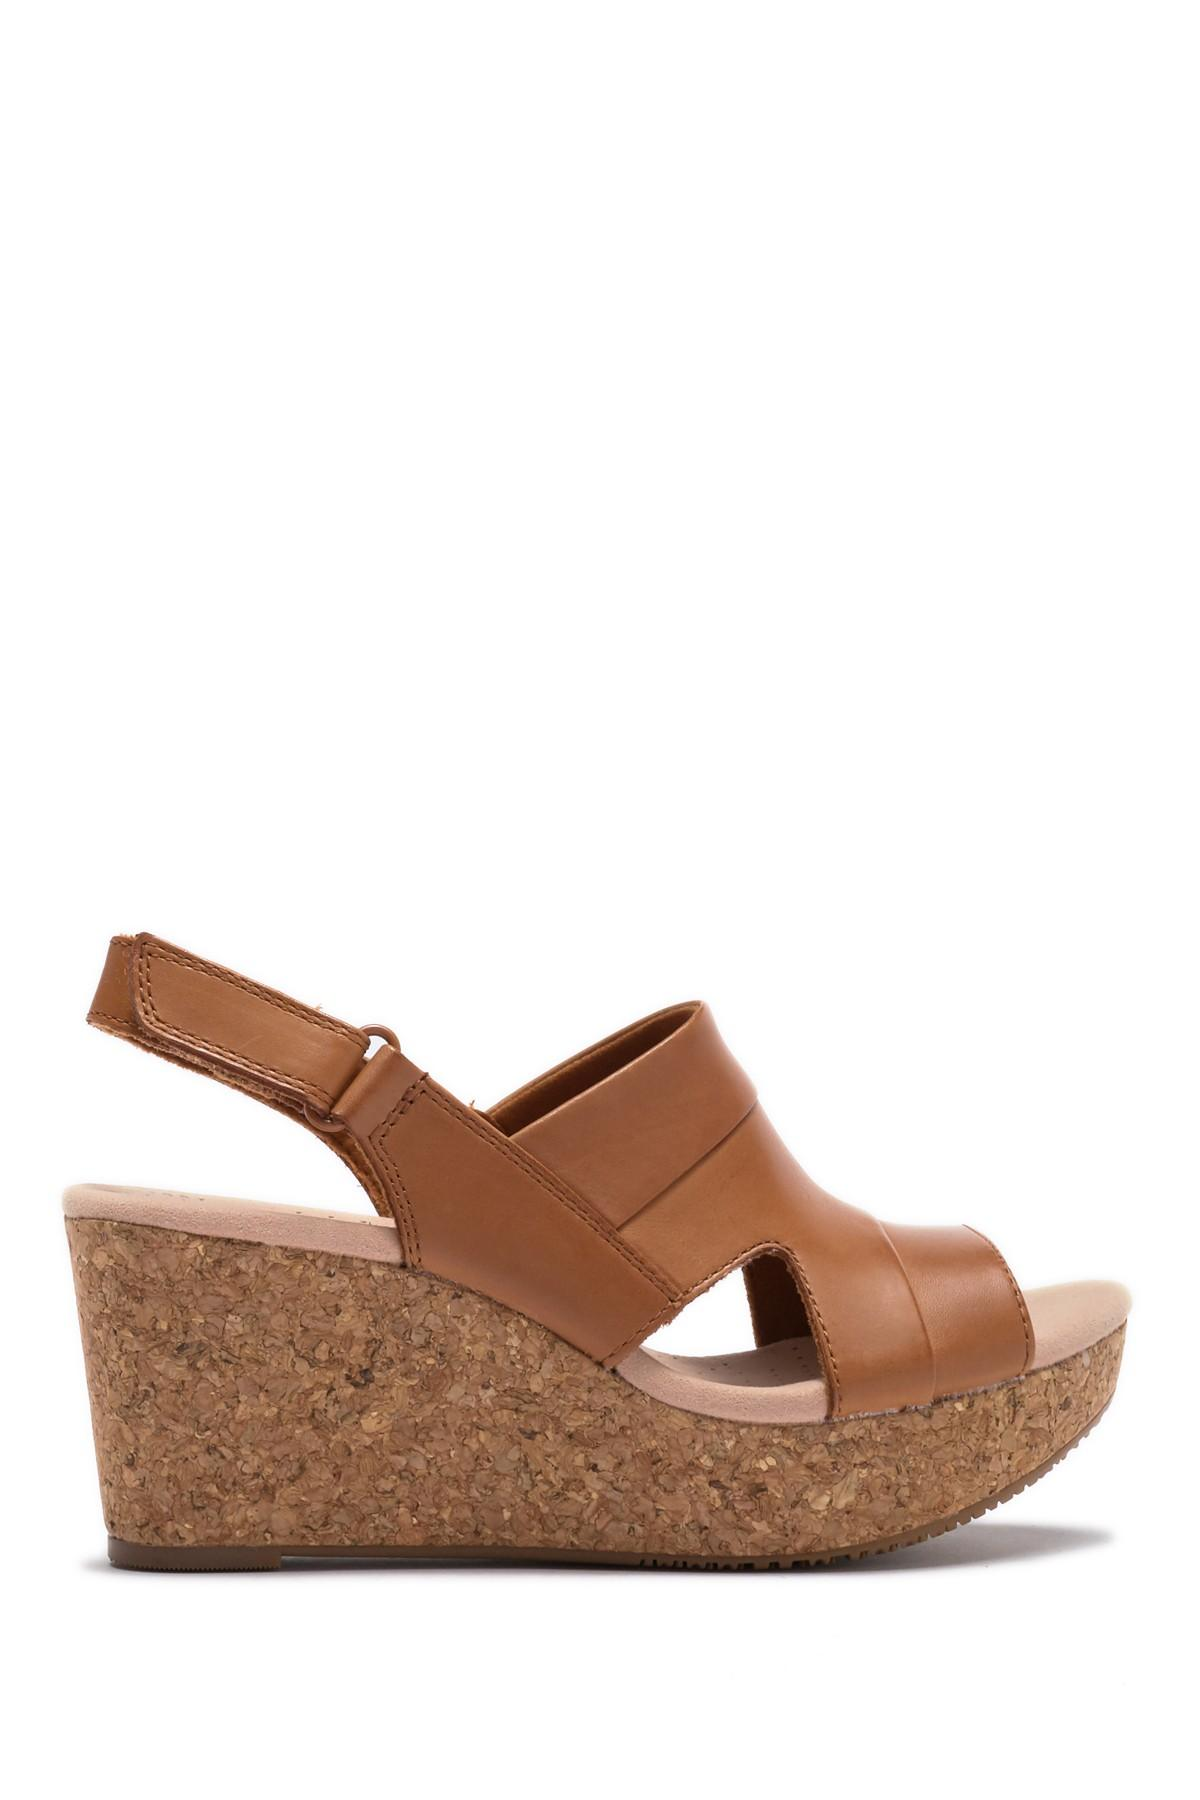 d36c6e8af7ef Clarks - Brown Annadel Ivory Wedge Sandal - Wide Width Available - Lyst.  View fullscreen